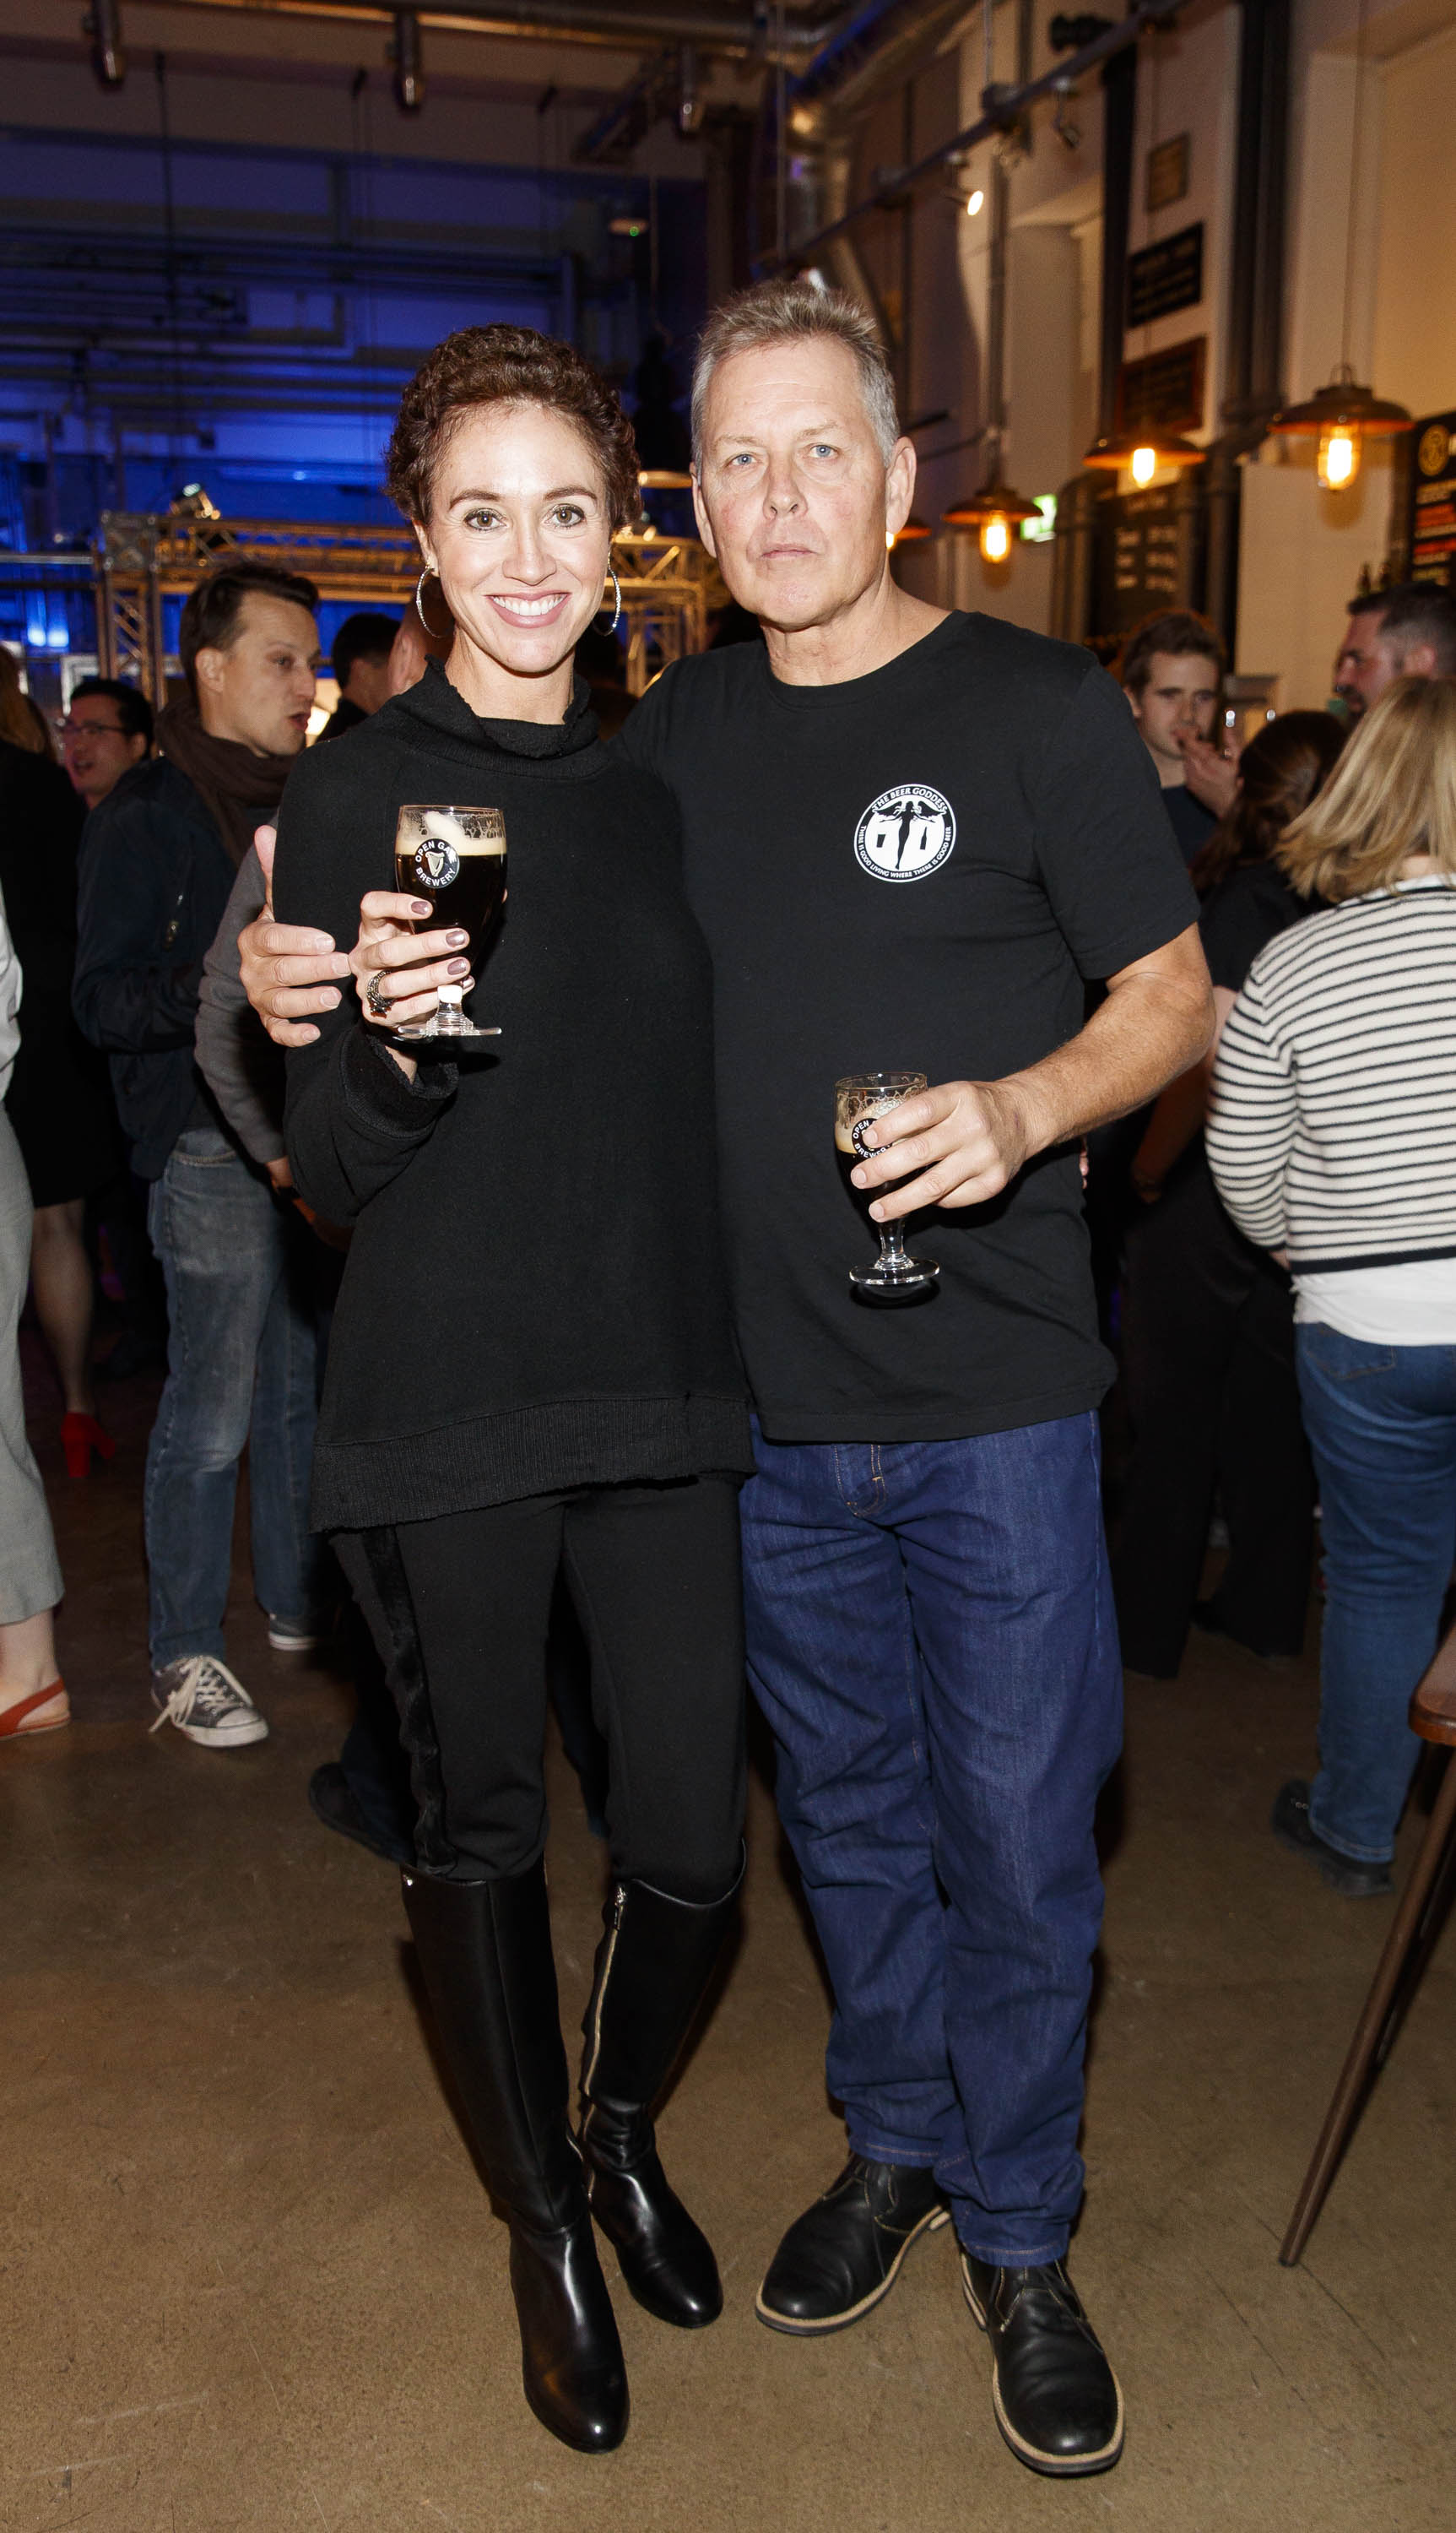 STOUT OF THIS WORLD The Beer Goddess Erin Peters and Mark Valance pictured on International Stout Day as Guinness celebrated innovation in brewing with a future of stout summit.    Guinness together with guest brewers and a host of experts from around the world, celebrated bravery in brewing by hosting a Future of Stout Summit, focused on stout innovation and the opportunities in brewing this unique style of beer.   At the summit, Guinness announced that its brewers are set to work on a feasibility study, which will investigate the viability of brewing a Guinness fit to be enjoyed in space. Through further research, innovation and experimentation, Guinness will draw on over 259 years of experience in the hope of making a breakthrough.     Hosted in the Open Gate Brewery, the home of beer innovation and experimentation at Guinness, the stout summit was attended by a team of brewers from the St. James's Gate Brewery in Dublin and other brewers from around the world including the UK, the Netherlands, Korea as well as brewers from all over Ireland. Inspiration at the summit was also delivered by Dr. Norah Patten, who is set to be the first Irish person to travel into space, Kitchen's Theory's Chef, Jozef Youssef and Oxford University Gastrophysics Professor, Charles Spence, who together are on a continuous odyssey to research and demystify the field of gastronomy, and Erin Peters, the beer writer behind International Stout Day. Picture Andres Poveda More information can be found at www.guinness.com   Enjoy Guinness Sensibly. Visit www.drinkaware.ie.